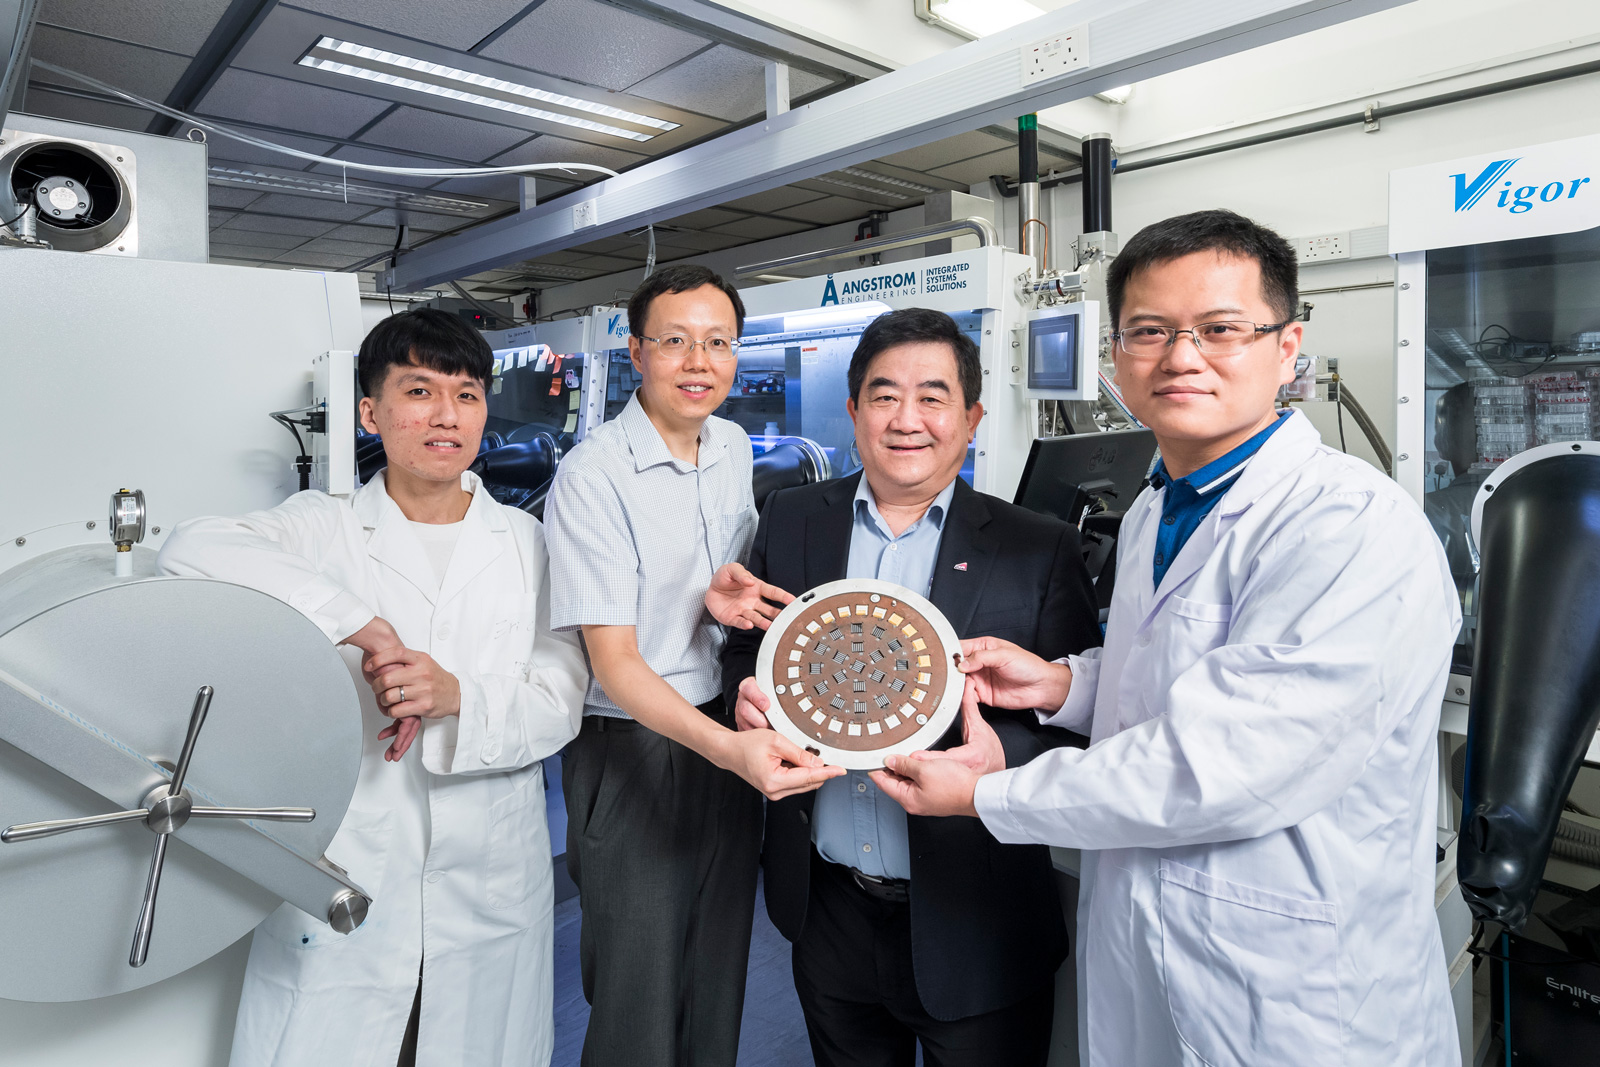 Key members of the research team: (from left) Wu Shengfan, Professor Xu Zhengtao, Professor Alex Jen Kwan-yue, and Dr Zhu Zonglong.